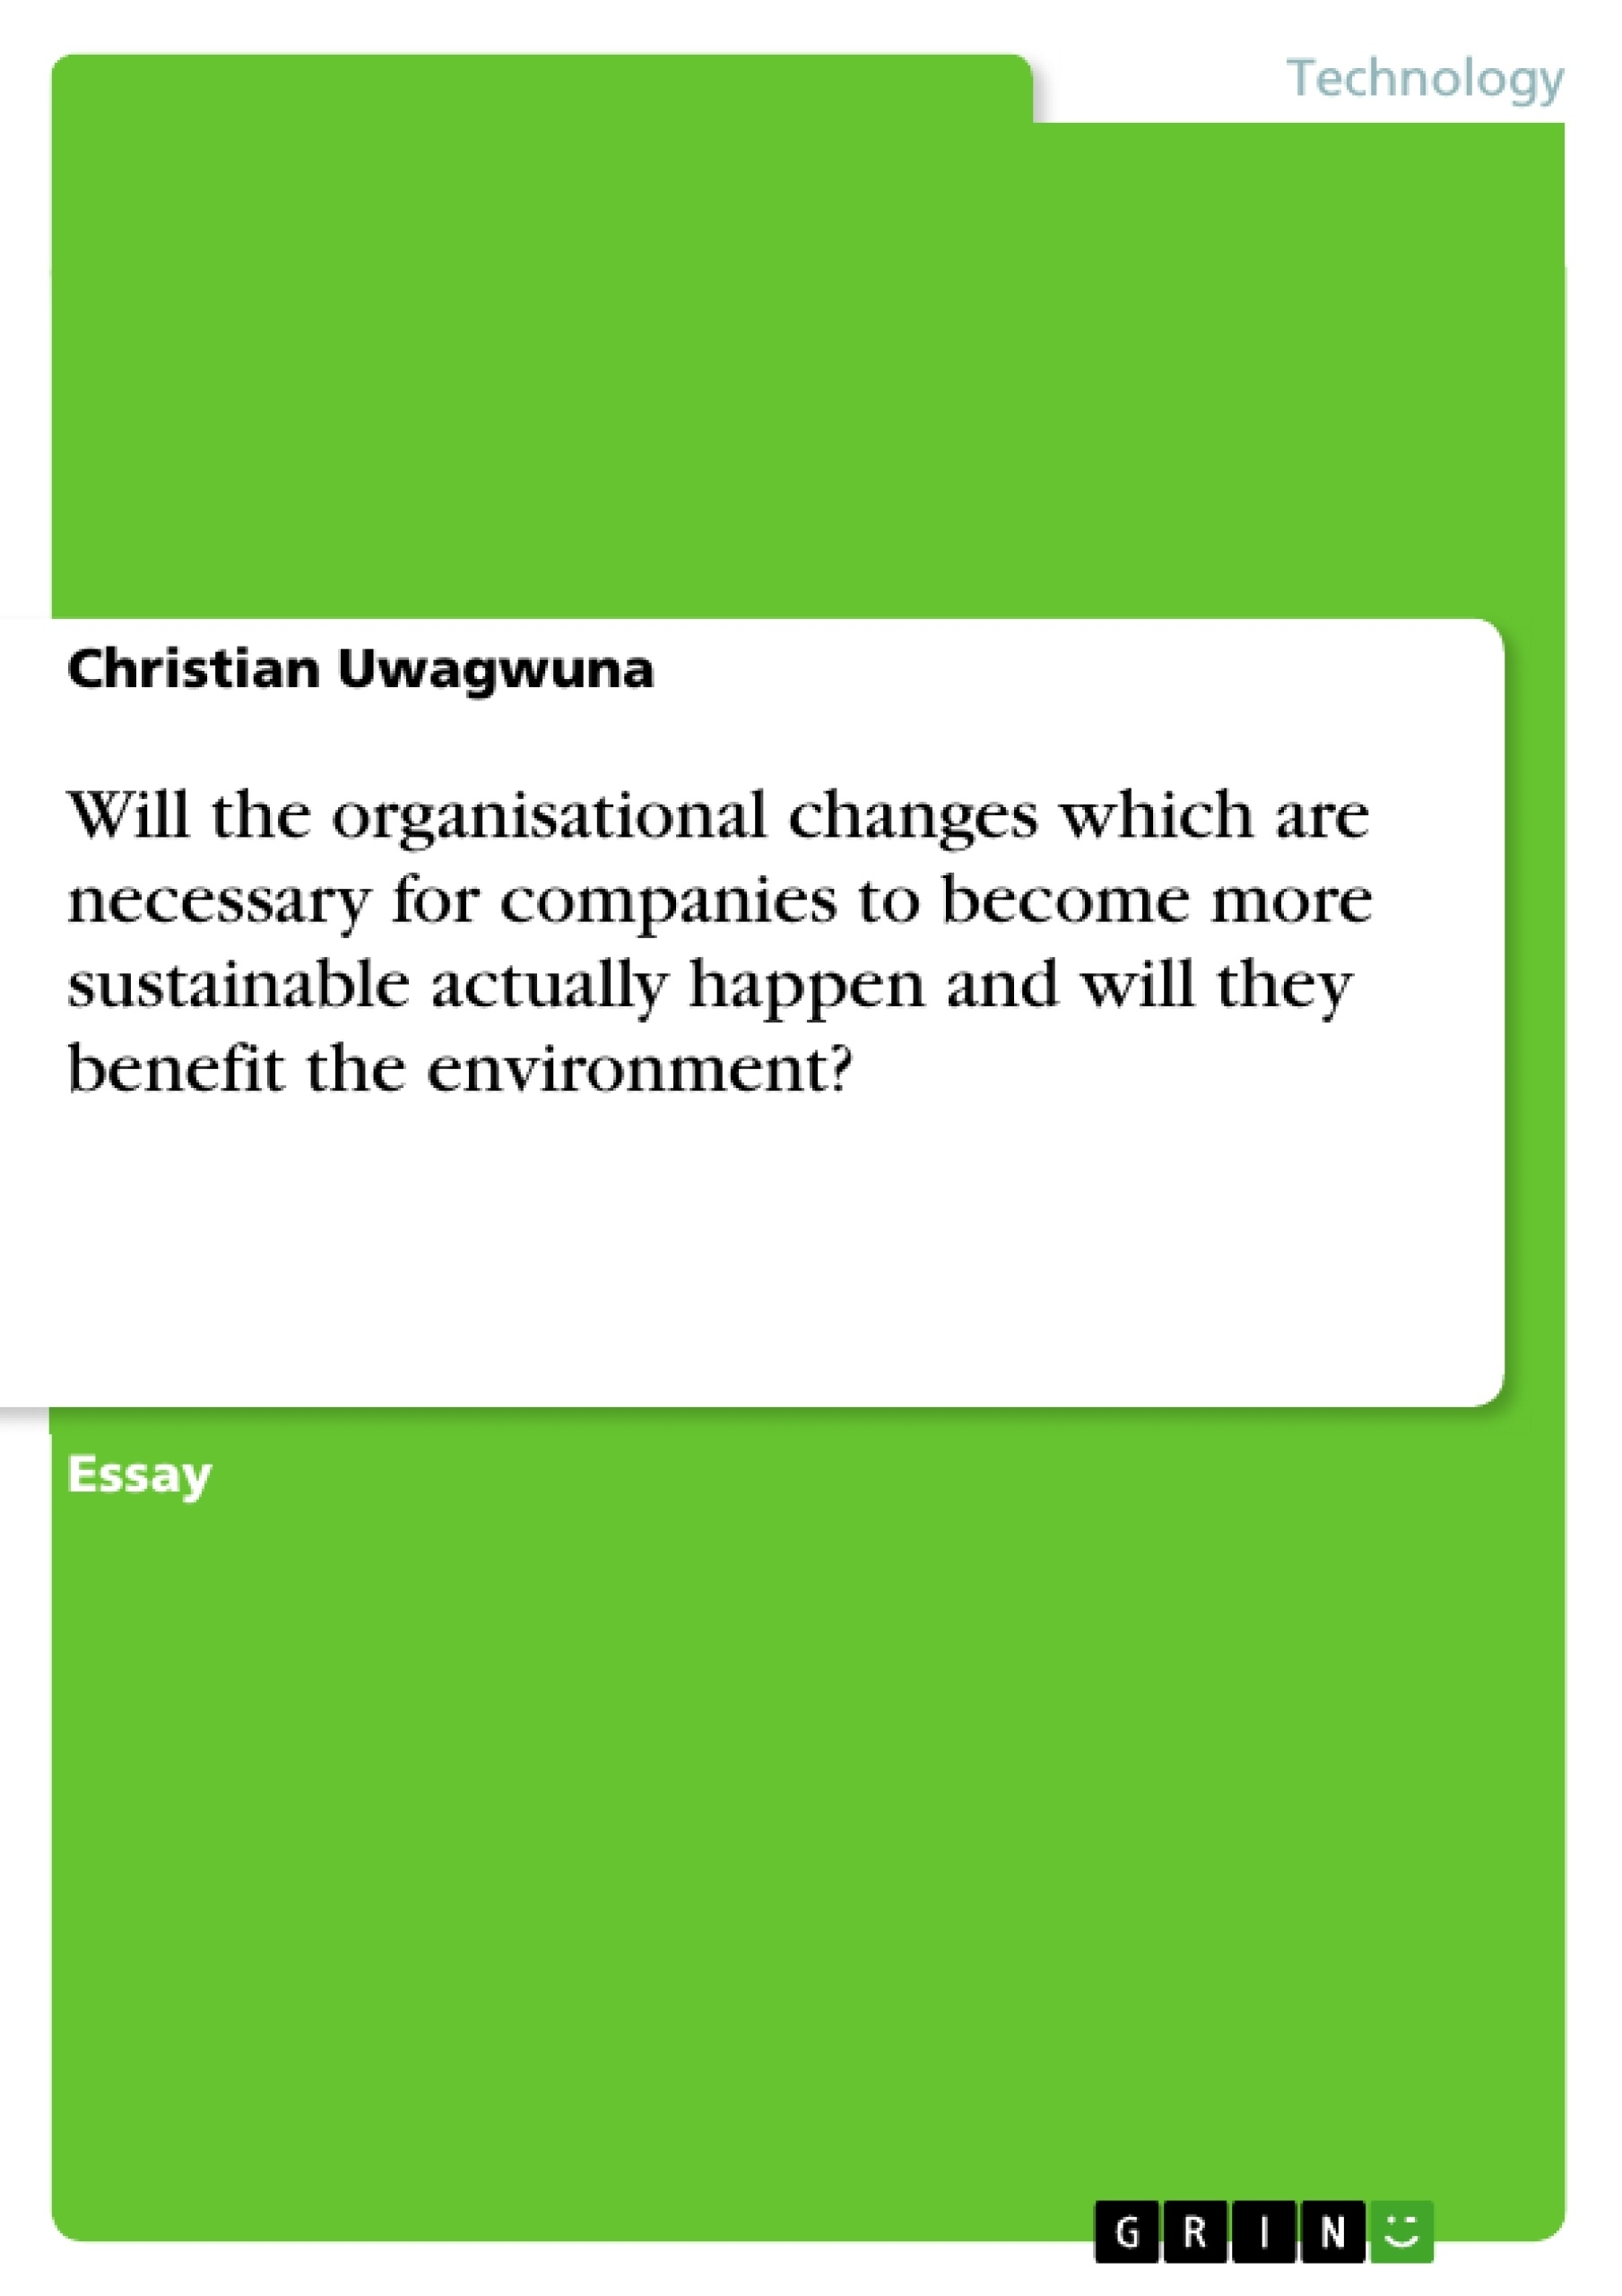 Title: Will the organisational changes which are necessary for companies to become more sustainable actually happen and will they benefit the environment?